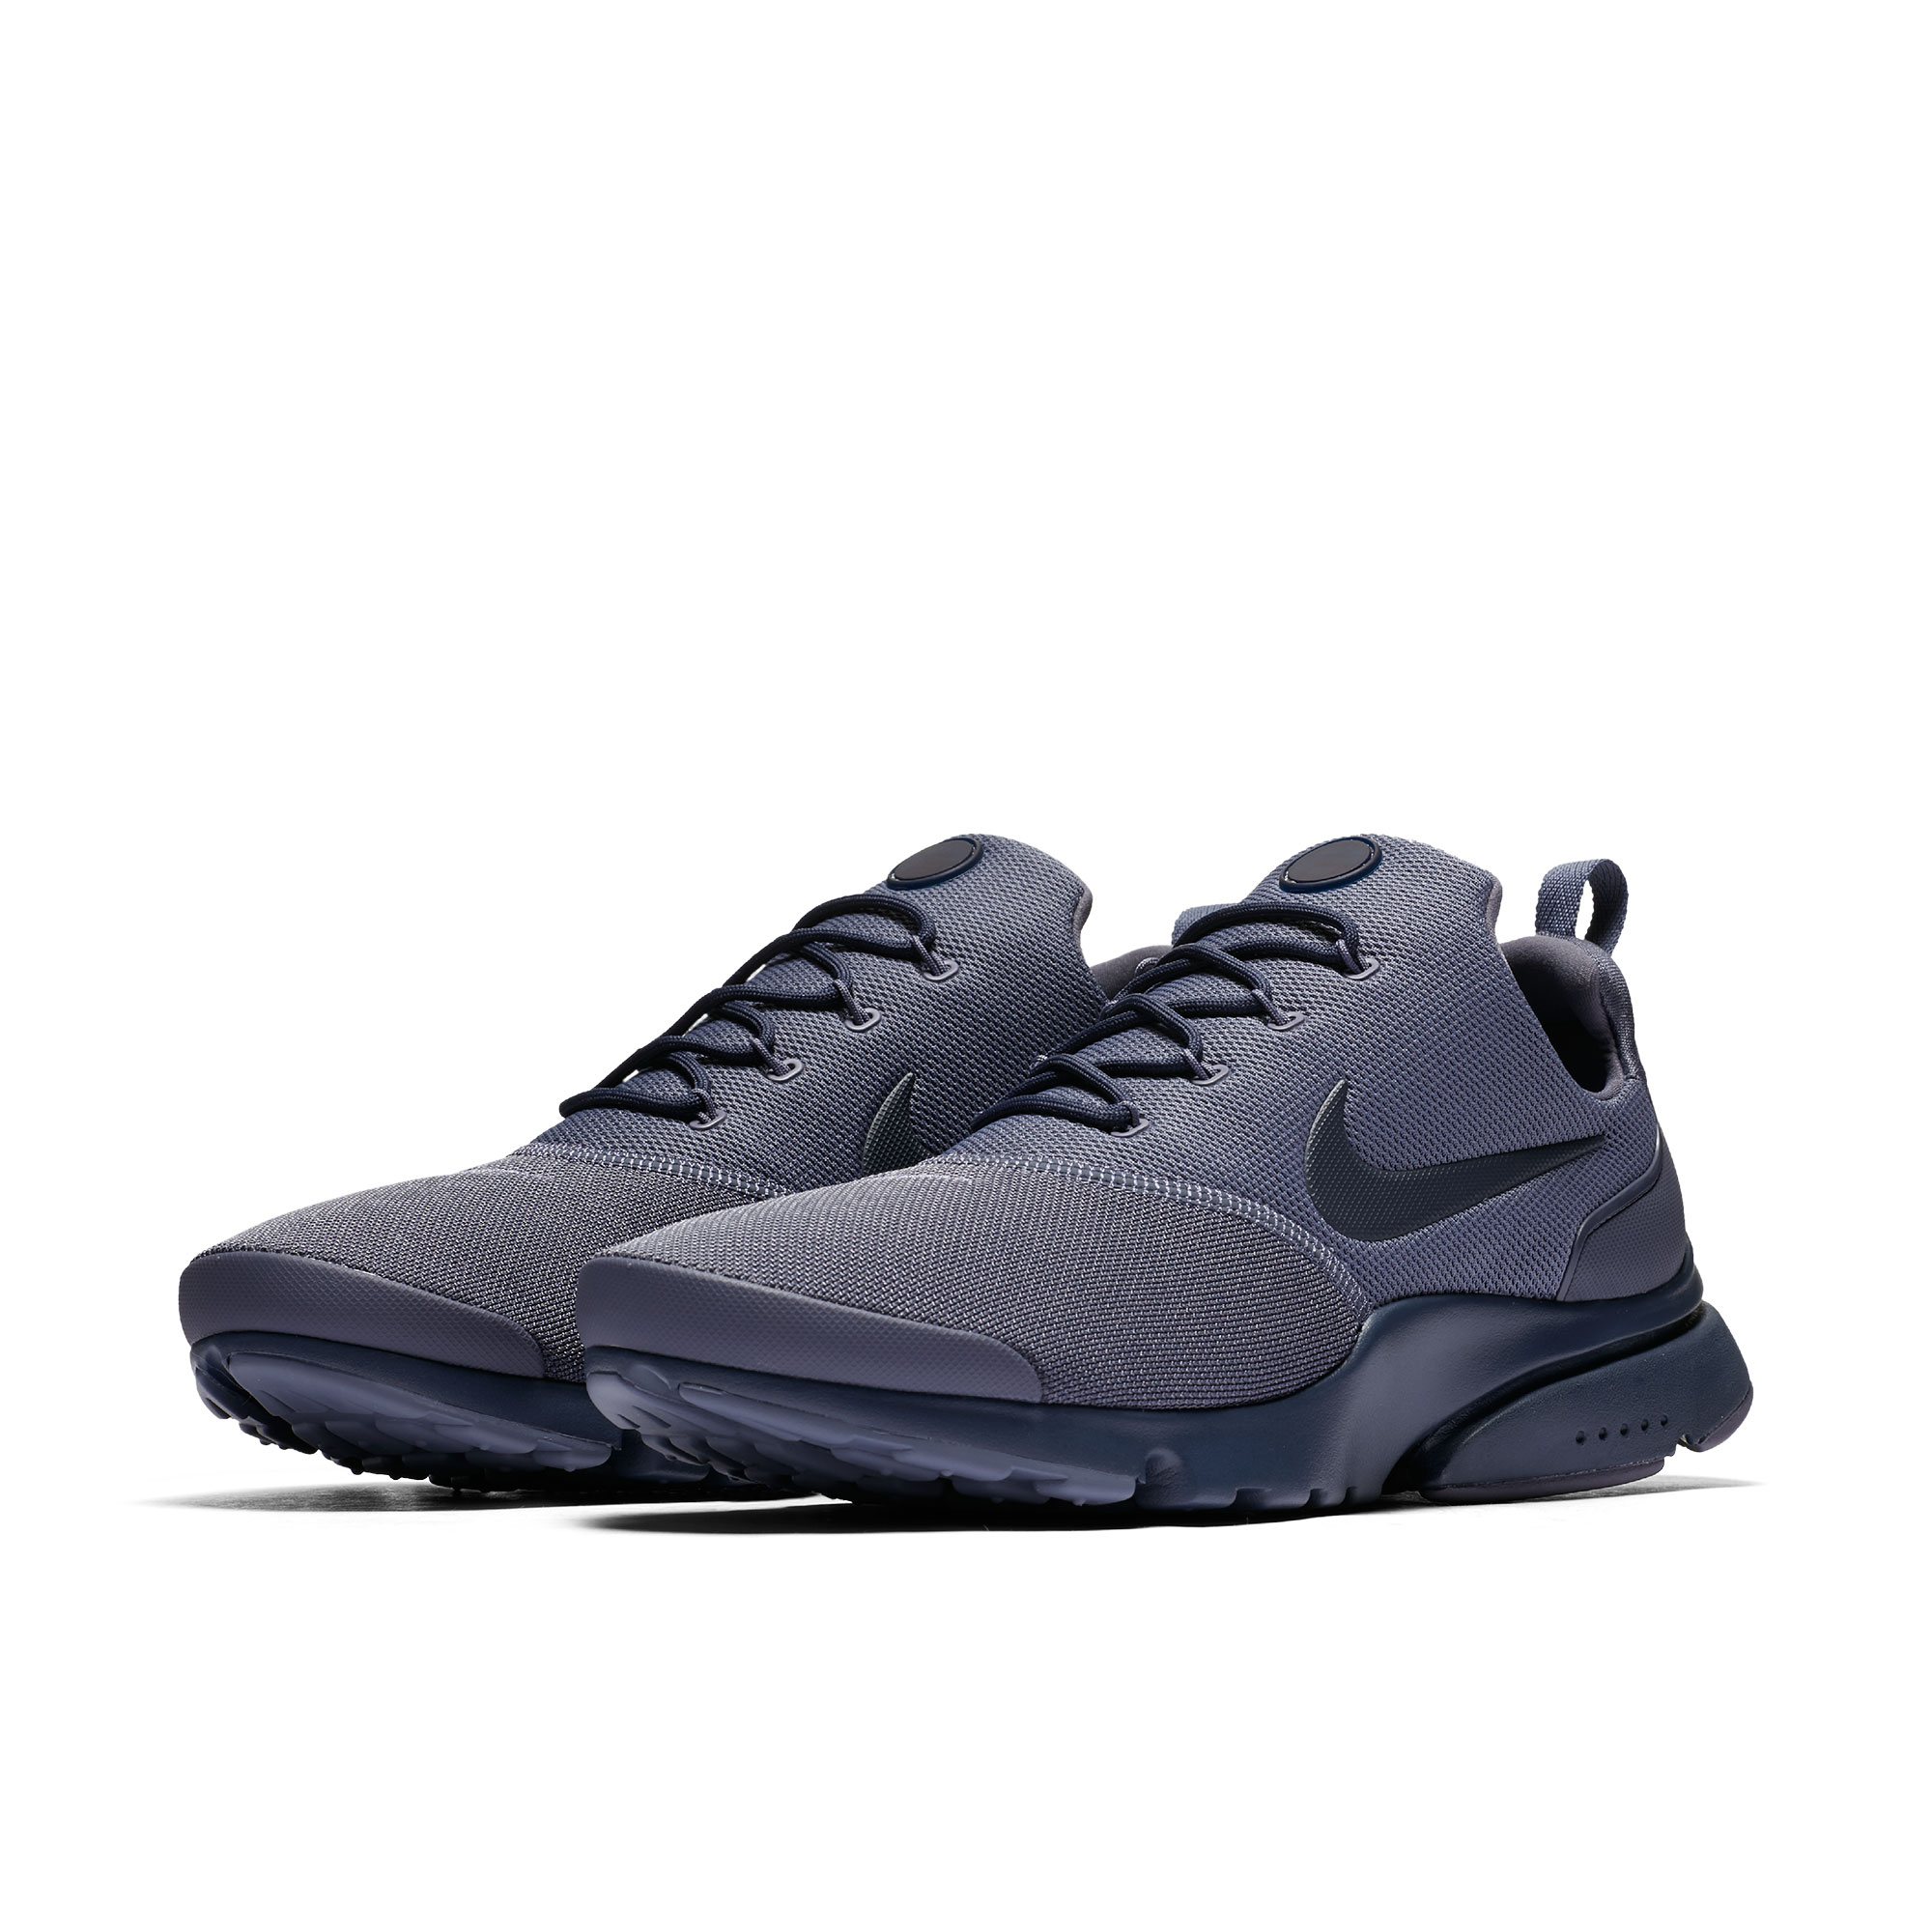 Original Original Original New Arrival authentisch NIKE PRESTO FLY Men Sports Support eadb6c